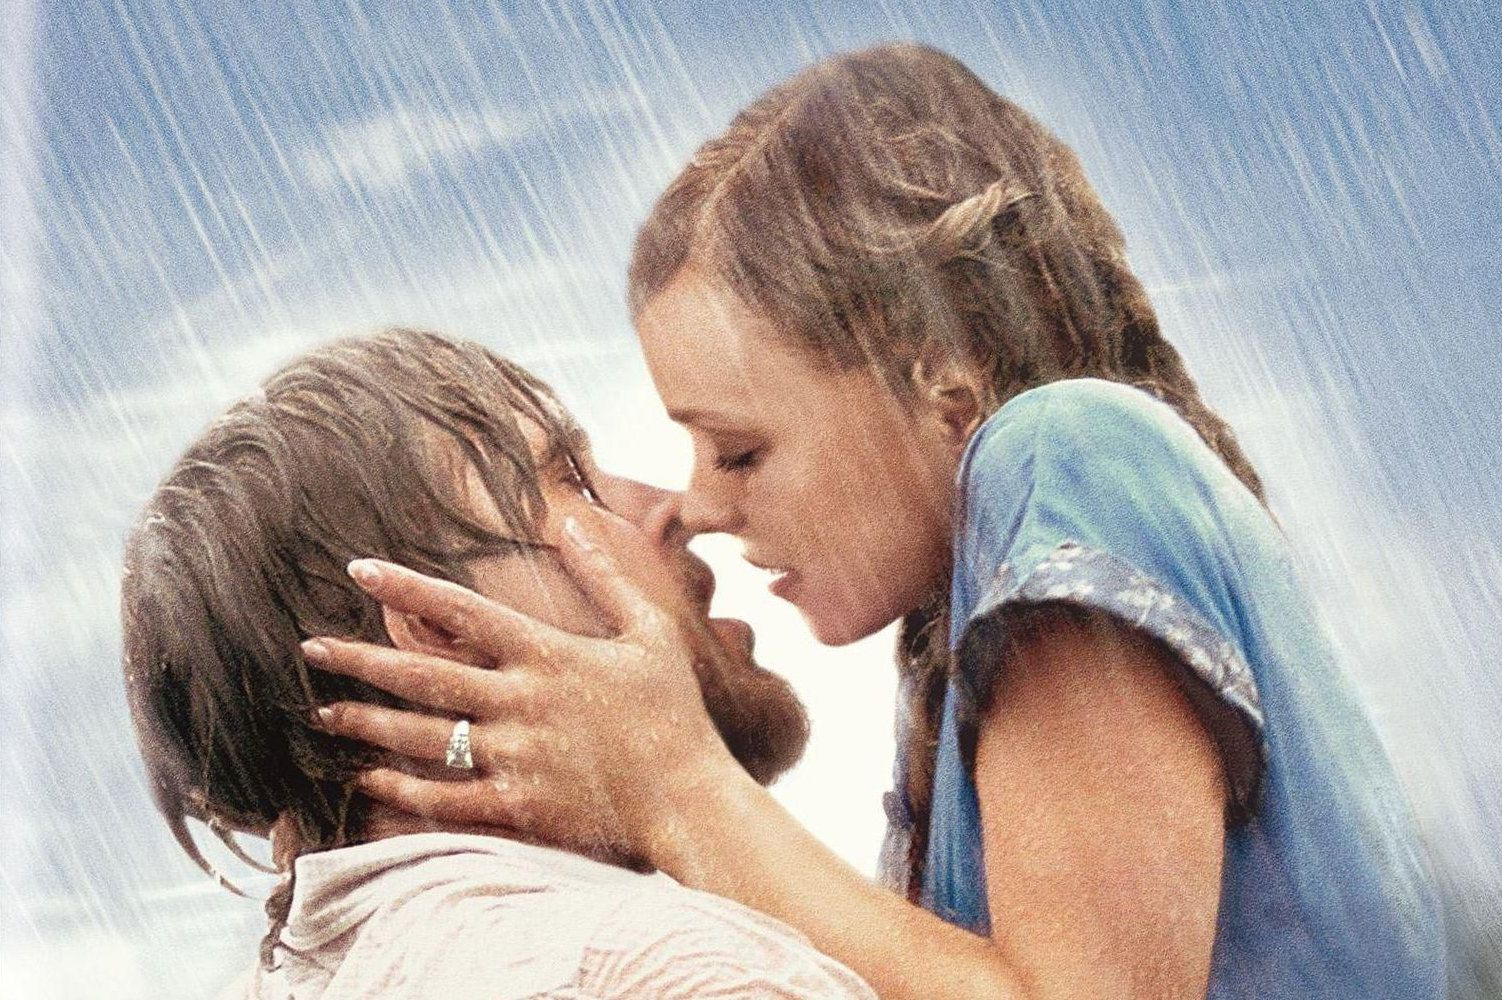 Movie Quotes From The Notebook